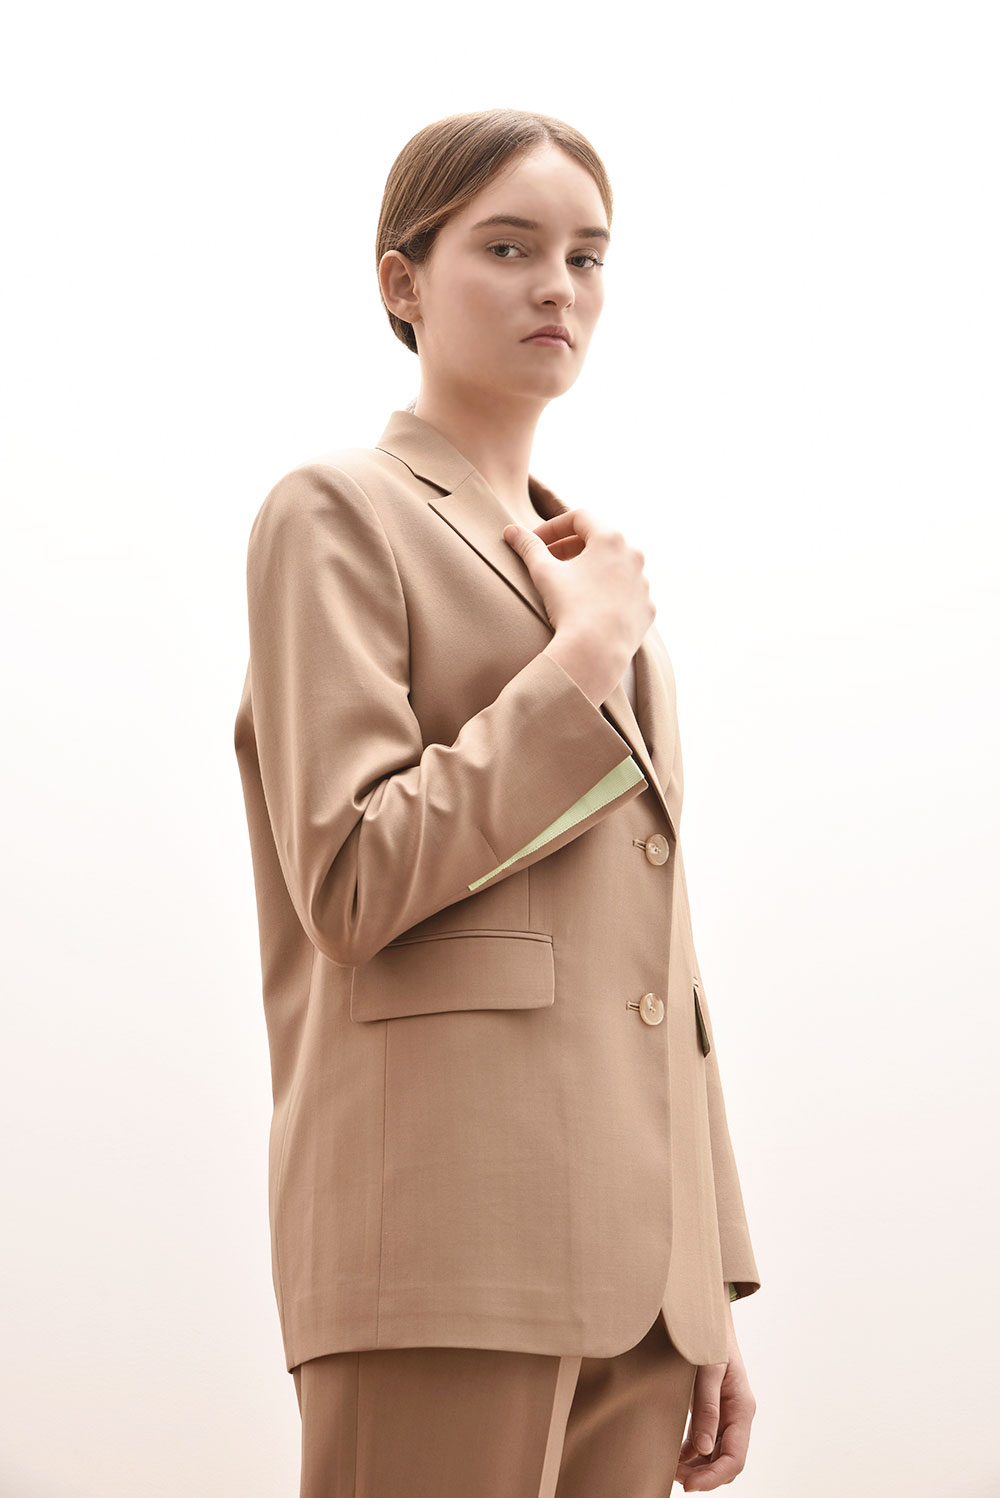 [김혜수 착용]ADS-JKB101-50 CASIOPEA SINGLE JACKET (Beige)